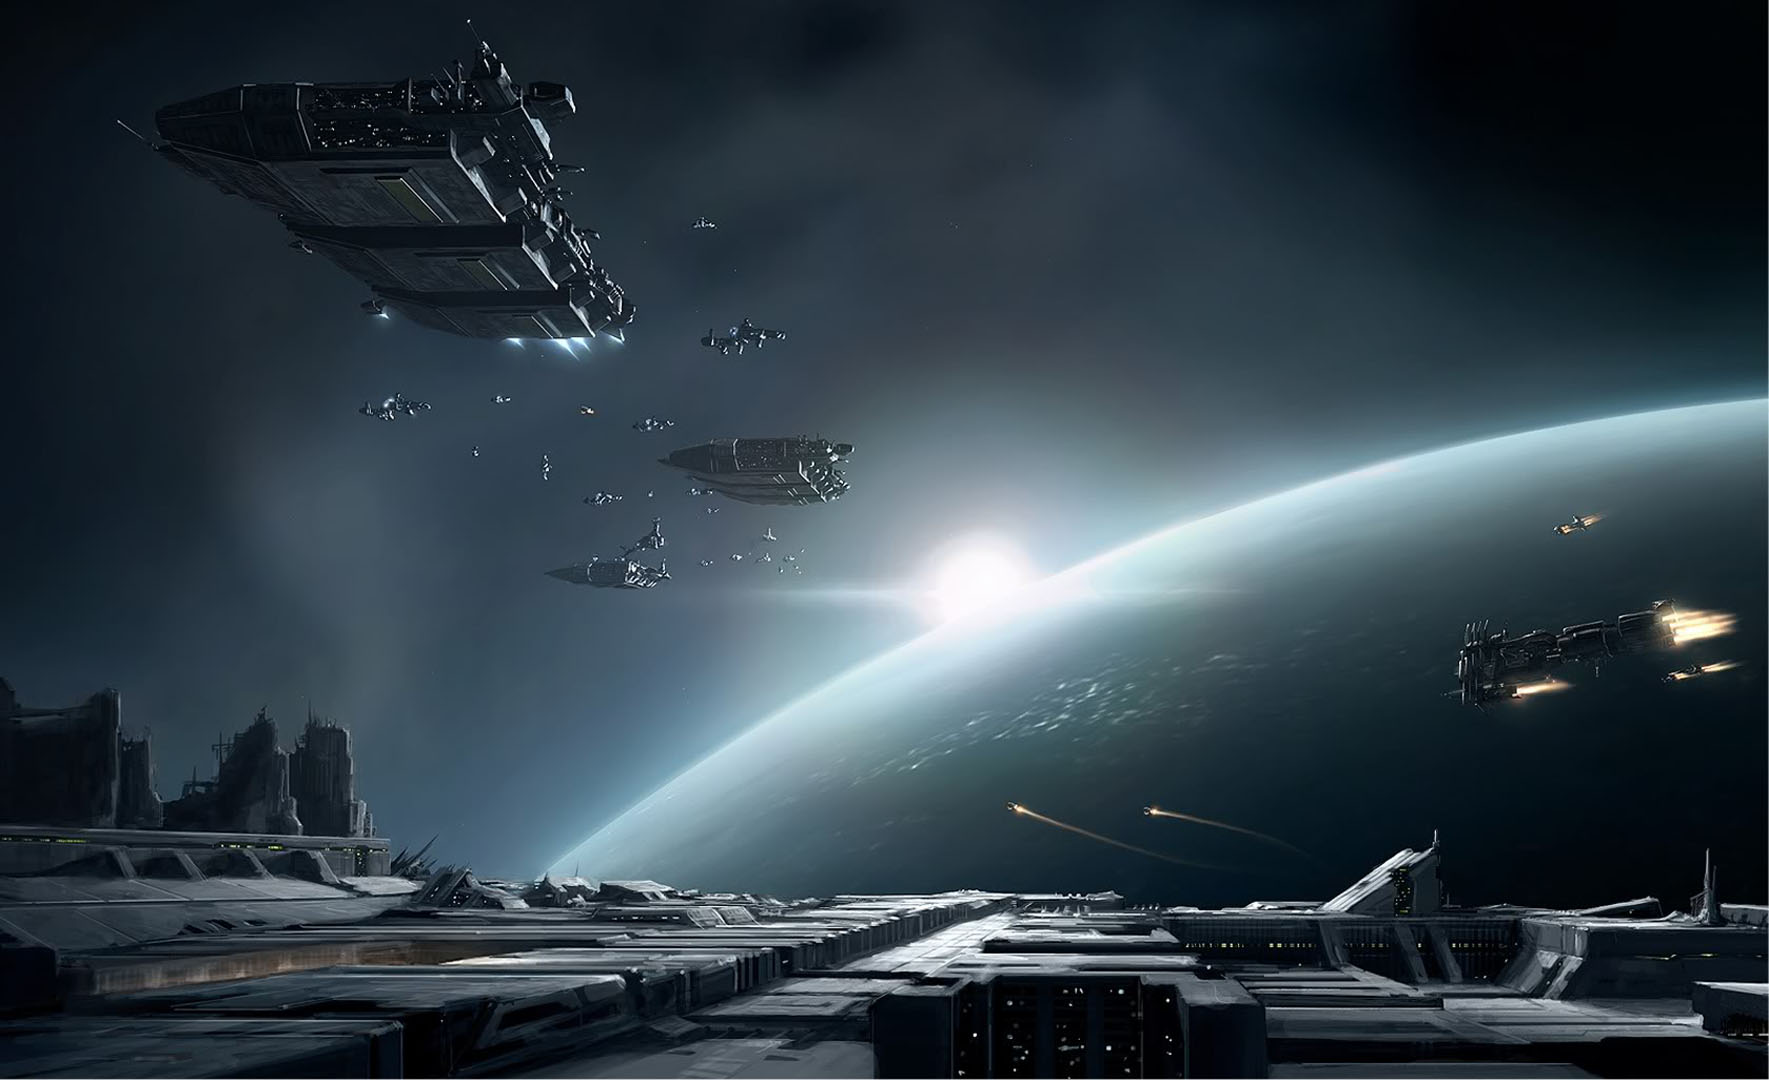 At Event Horizon   Rpg Games Wallpaper Image featuring Eve Online 1769x1080